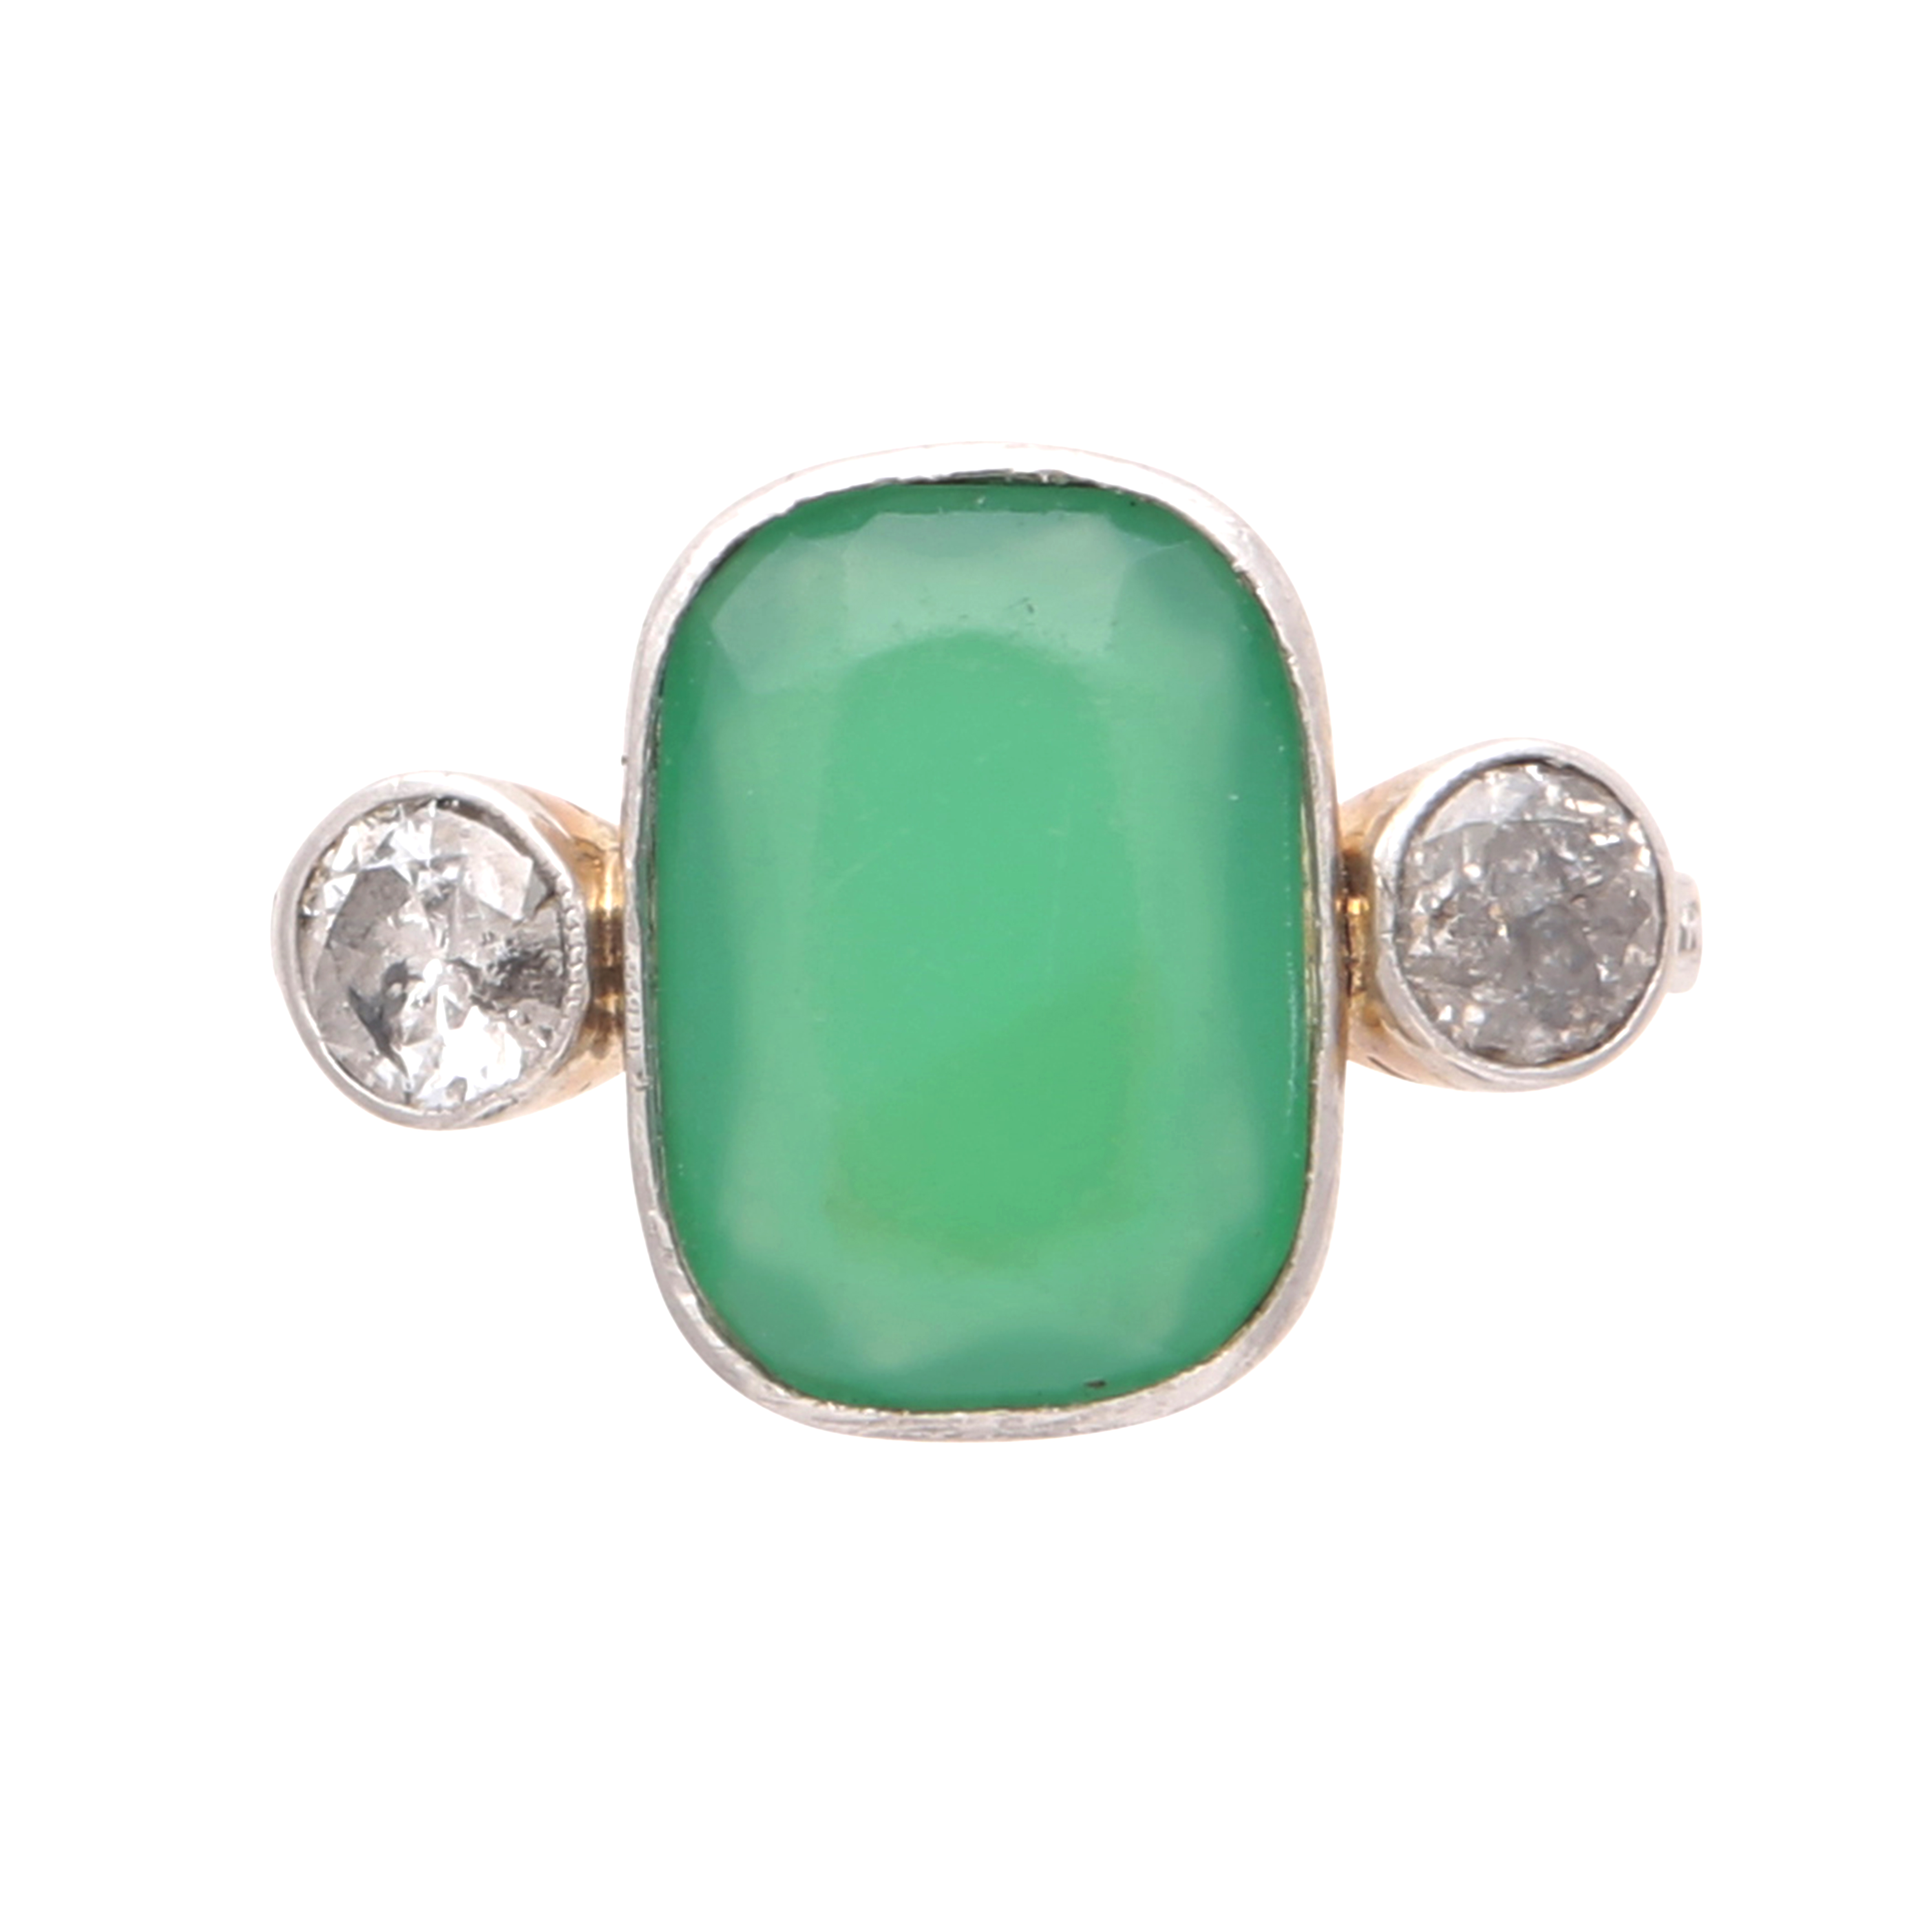 Los 177 - An emerald and diamond dress ring in yellow gold, unmarked, designed as an oval cushion shaped